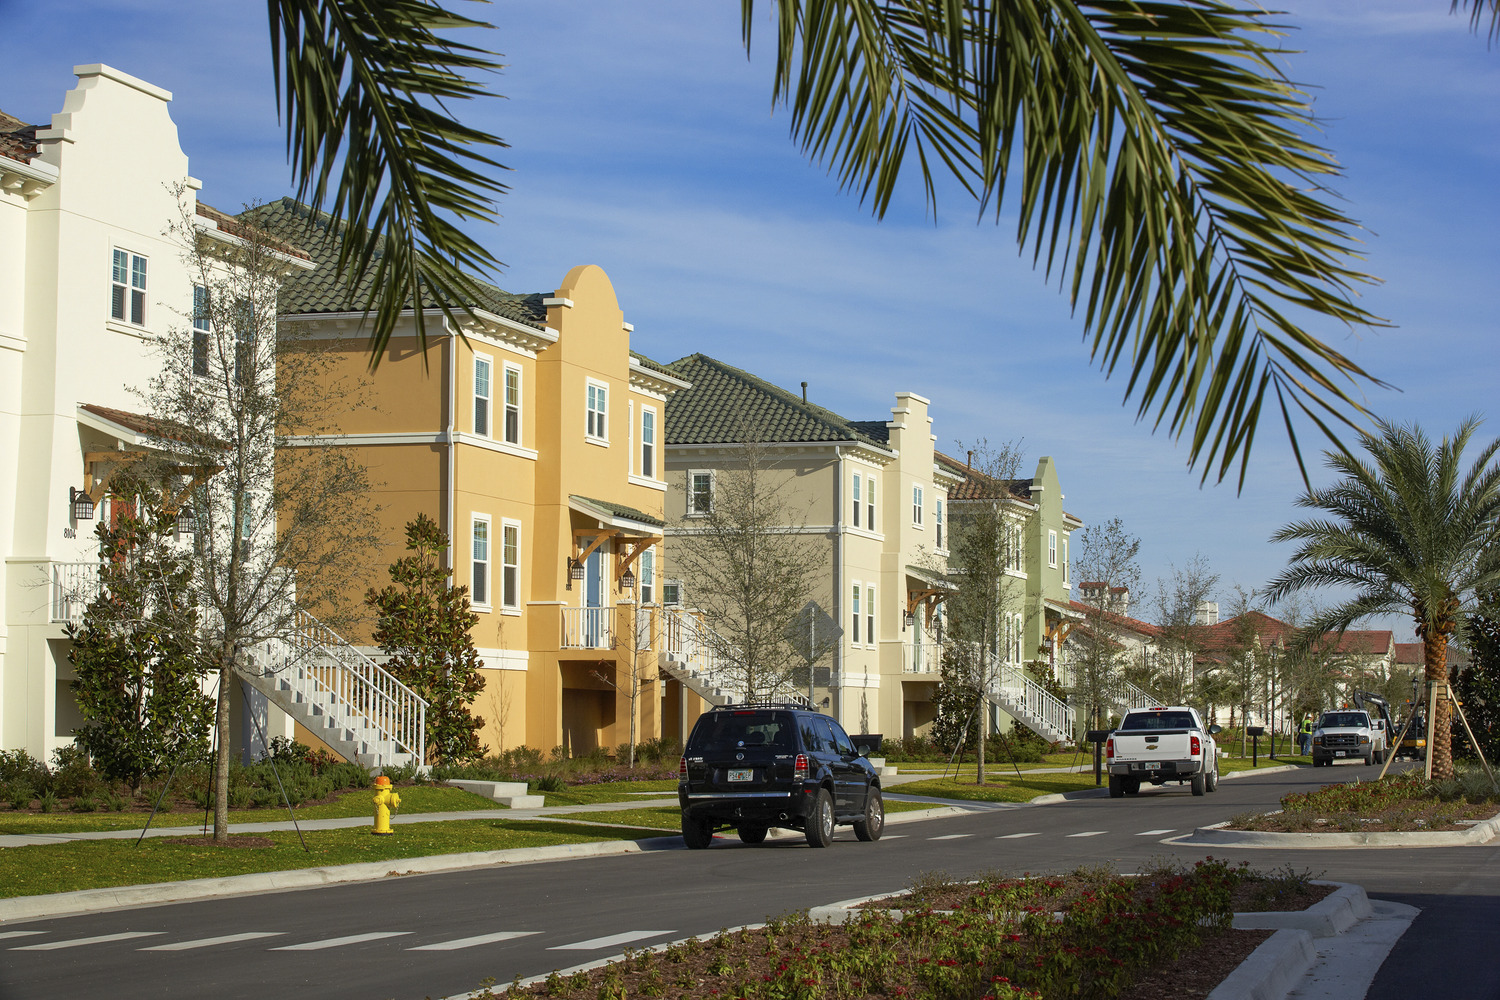 CBG builds MacDill Family Housing, a 527 Homes for Military Families in the Air Force at Harbor Bay at MacDill in Tampa, FL - Image #2